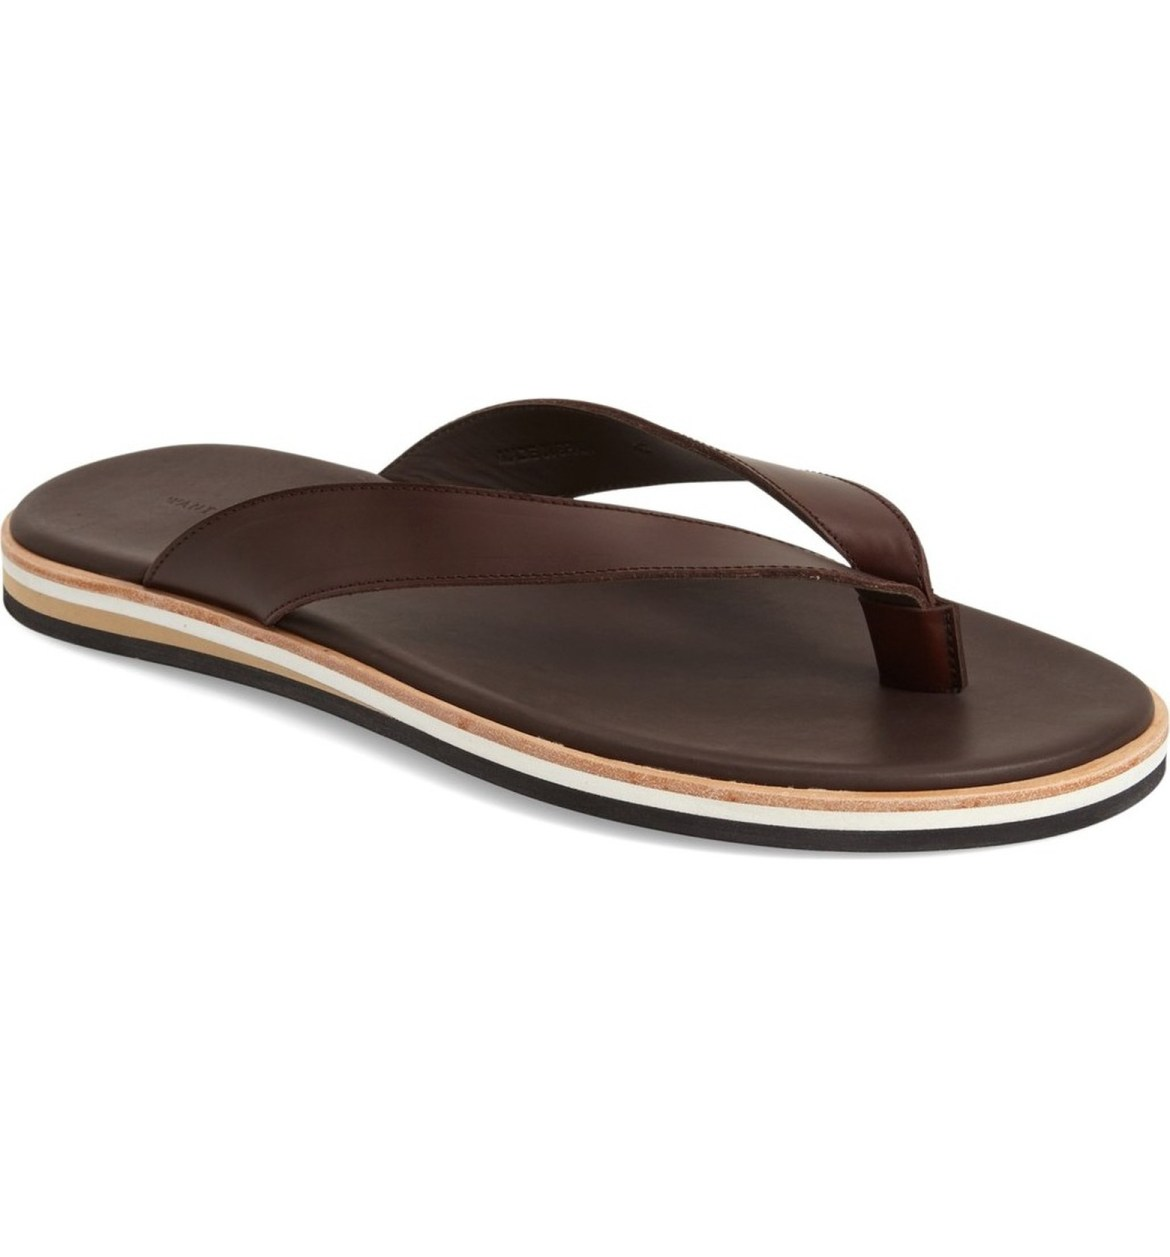 WANT Les Essentiels Dumont thong sandals, at Nordstrom